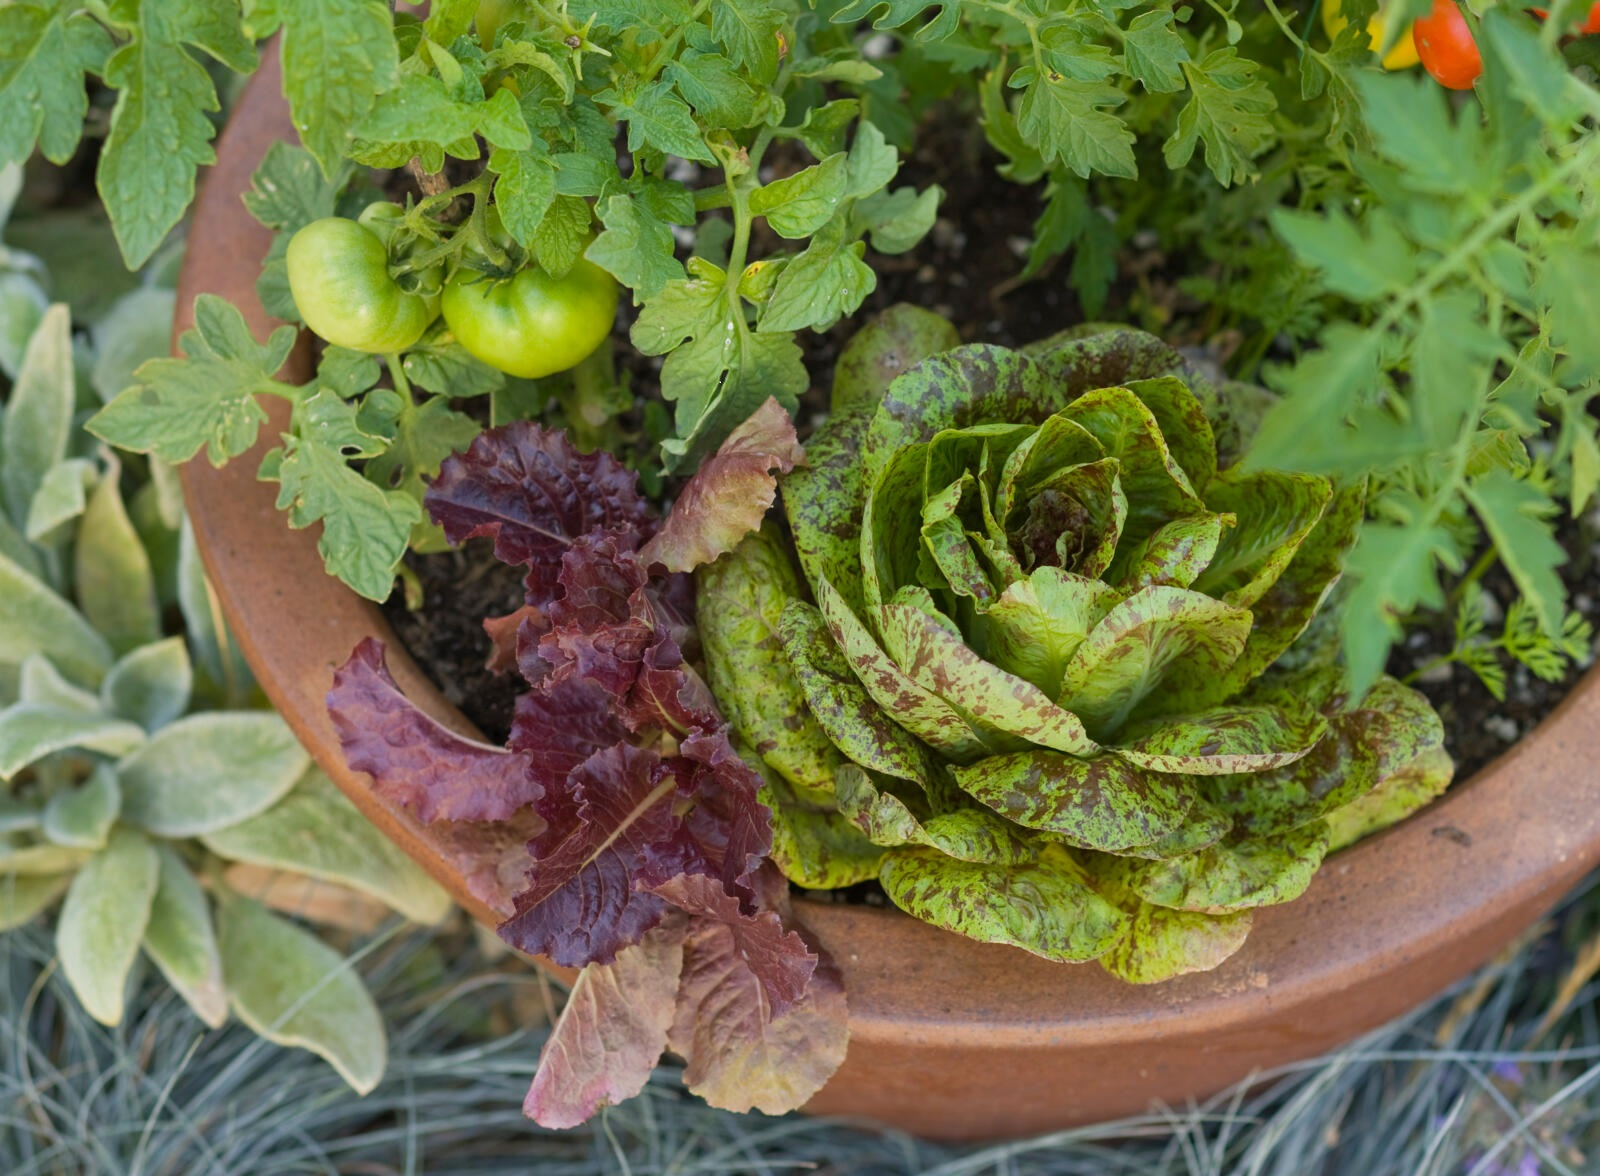 lettuce, tomatoes, and herbs growing in terra cotta pot container garden